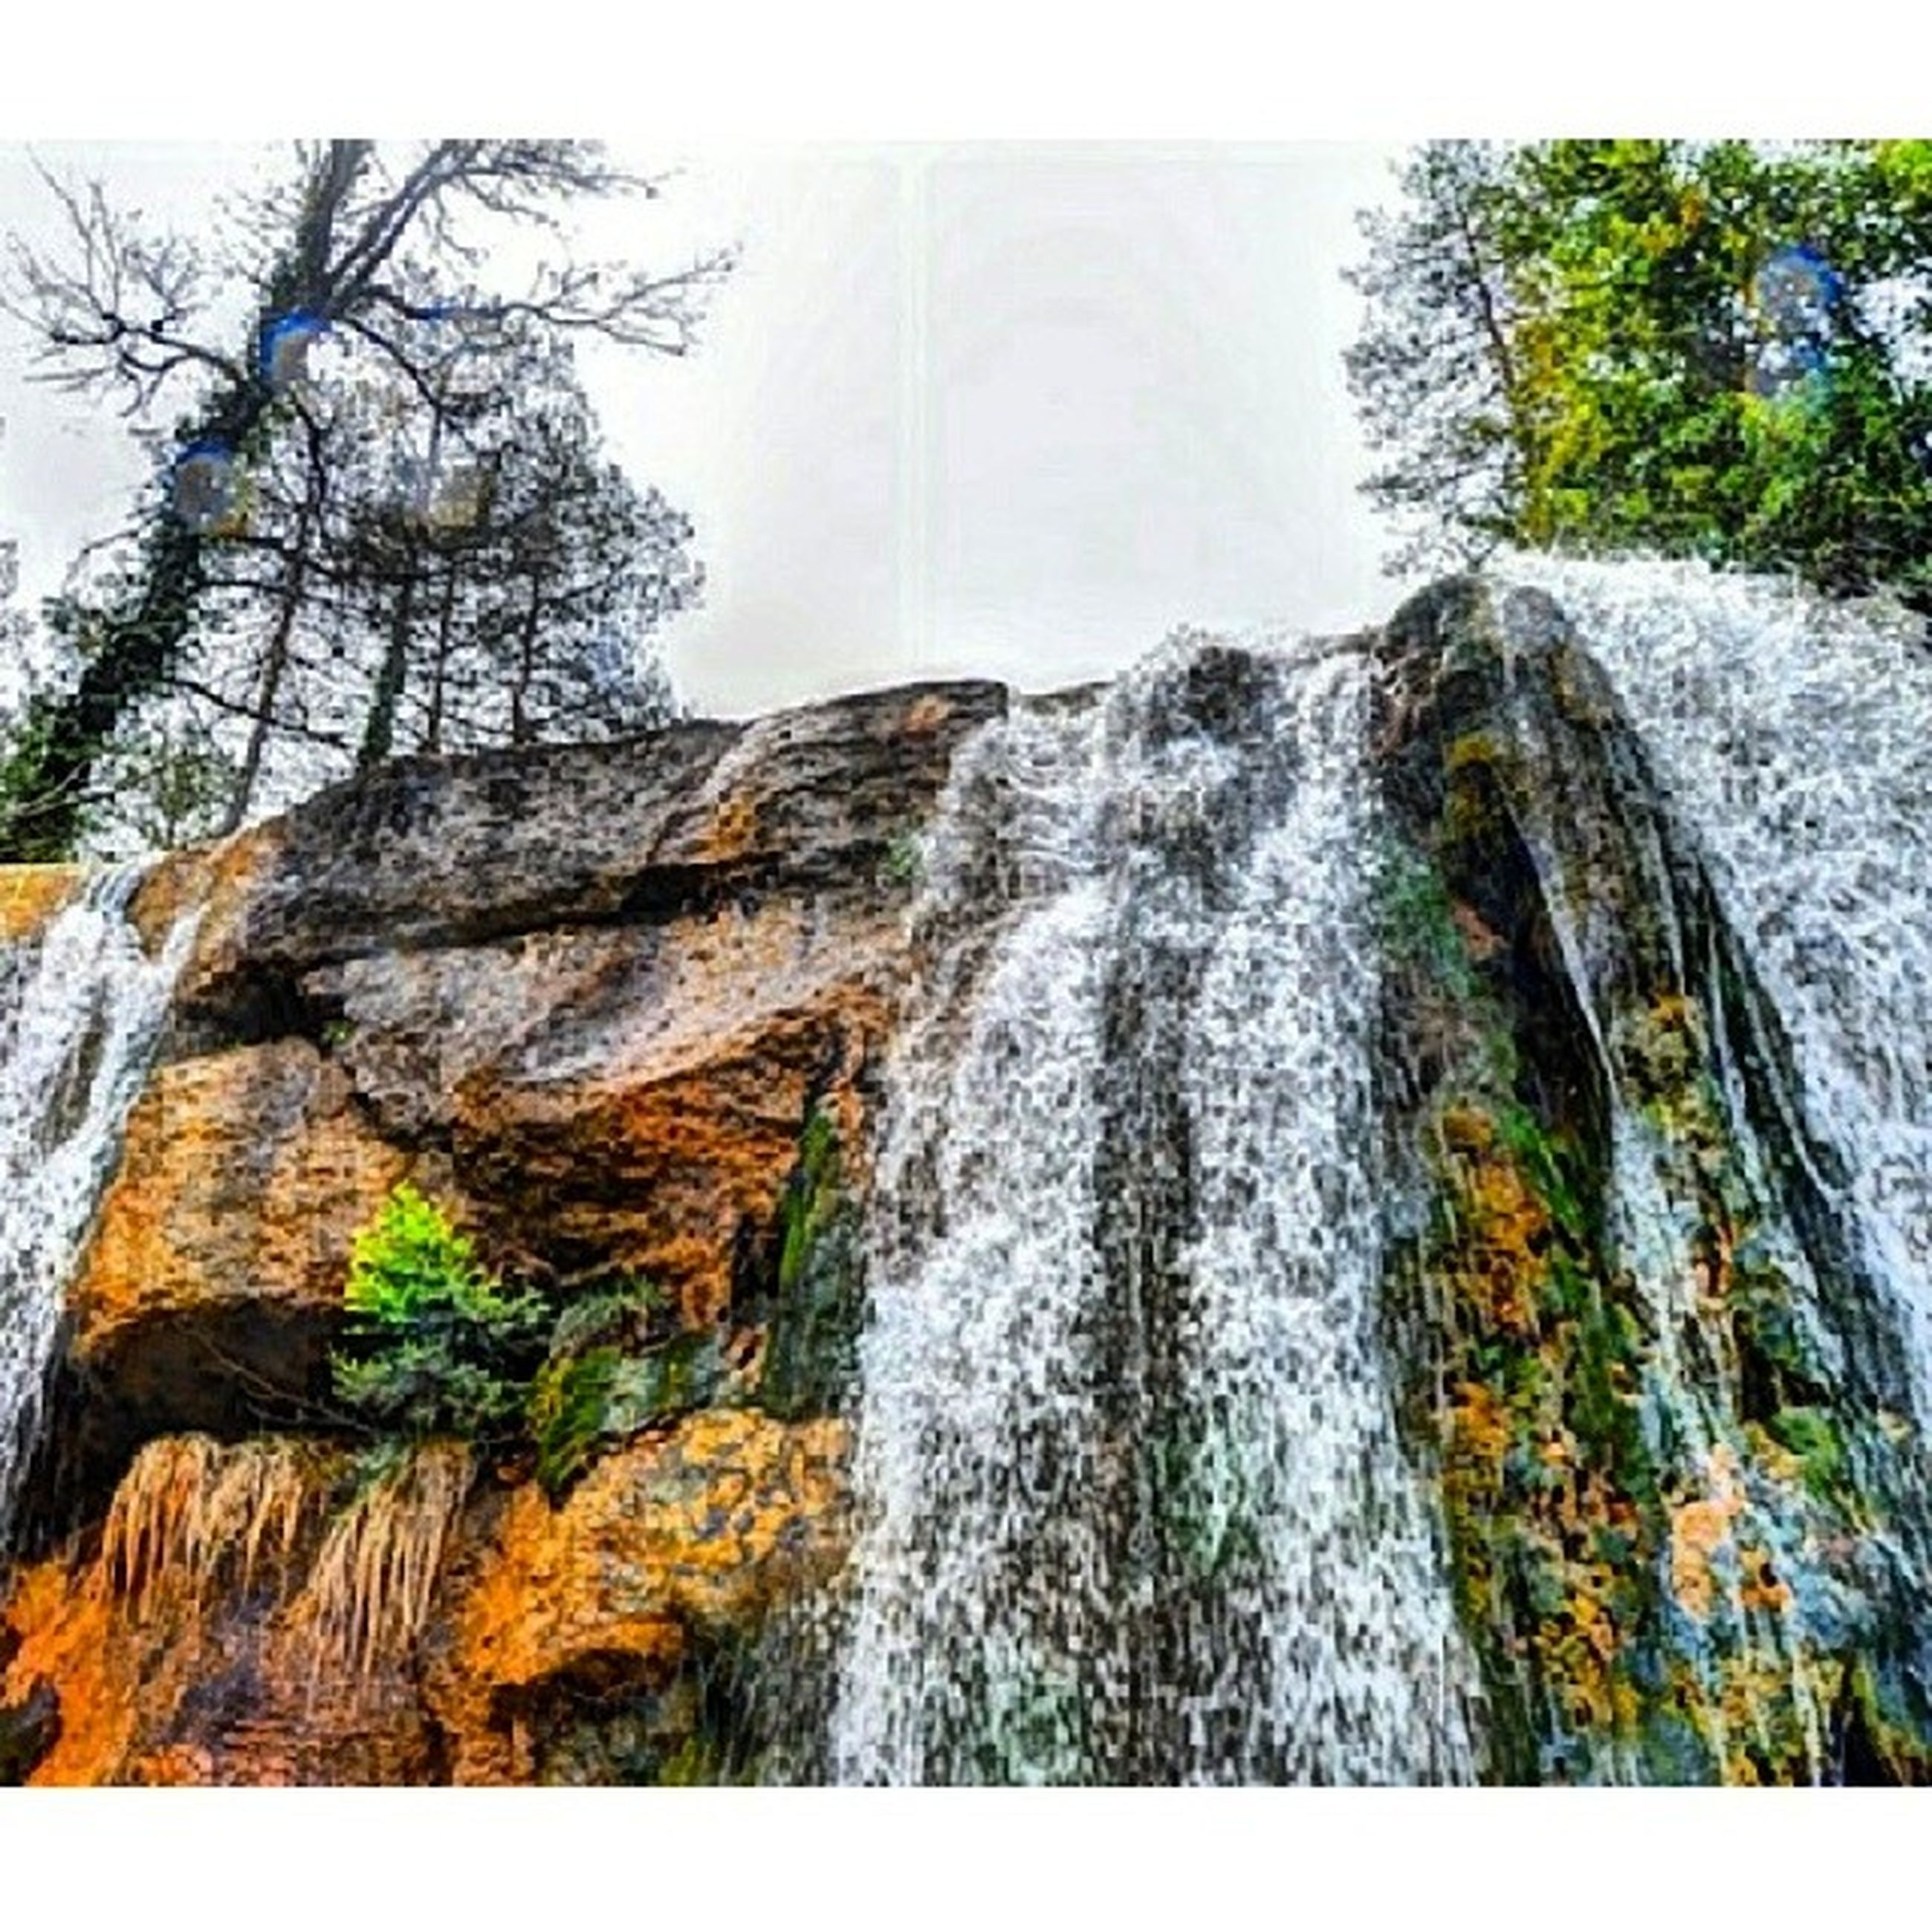 tree, waterfall, water, nature, rock - object, motion, flowing water, clear sky, rock formation, beauty in nature, low angle view, scenics, long exposure, flowing, day, tranquility, growth, outdoors, no people, branch